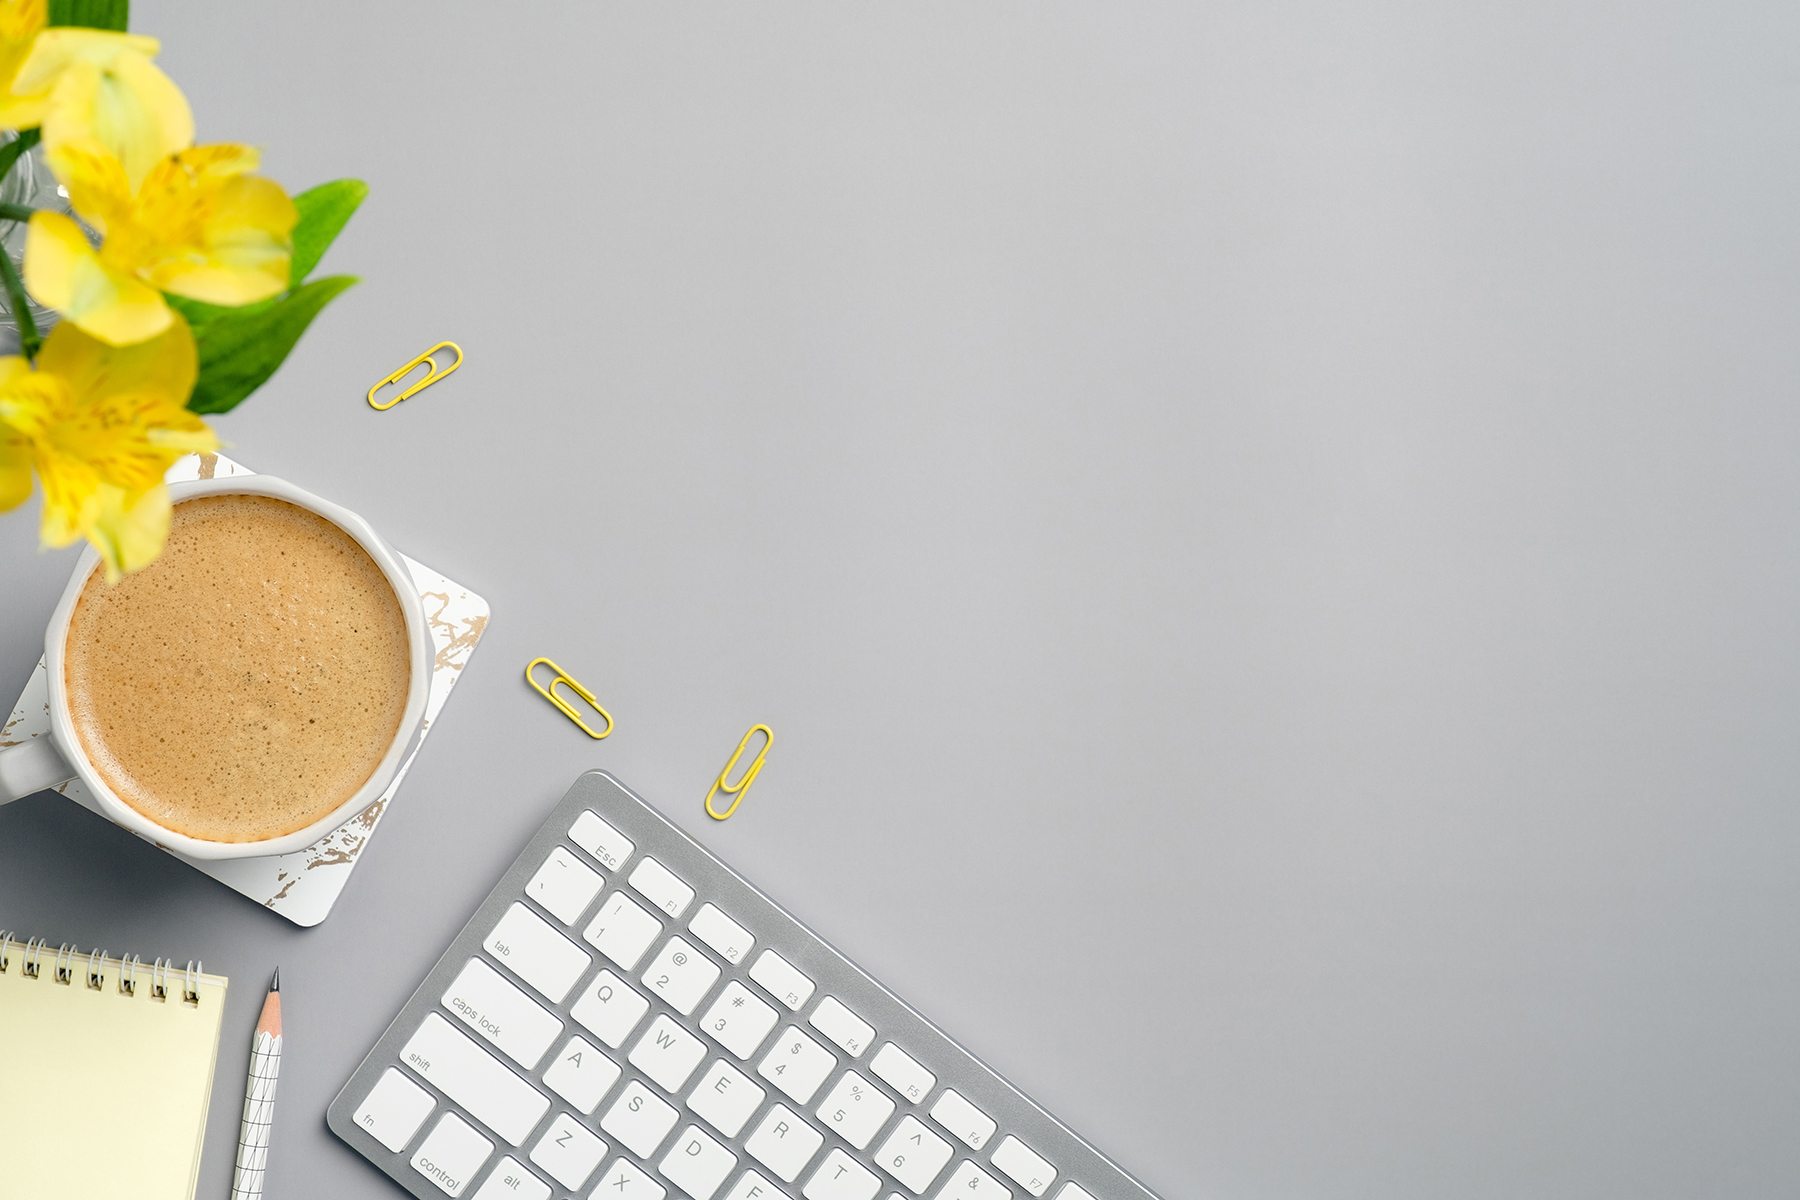 symbol image: compter keyboard, cup of coffe, notepad and flowers